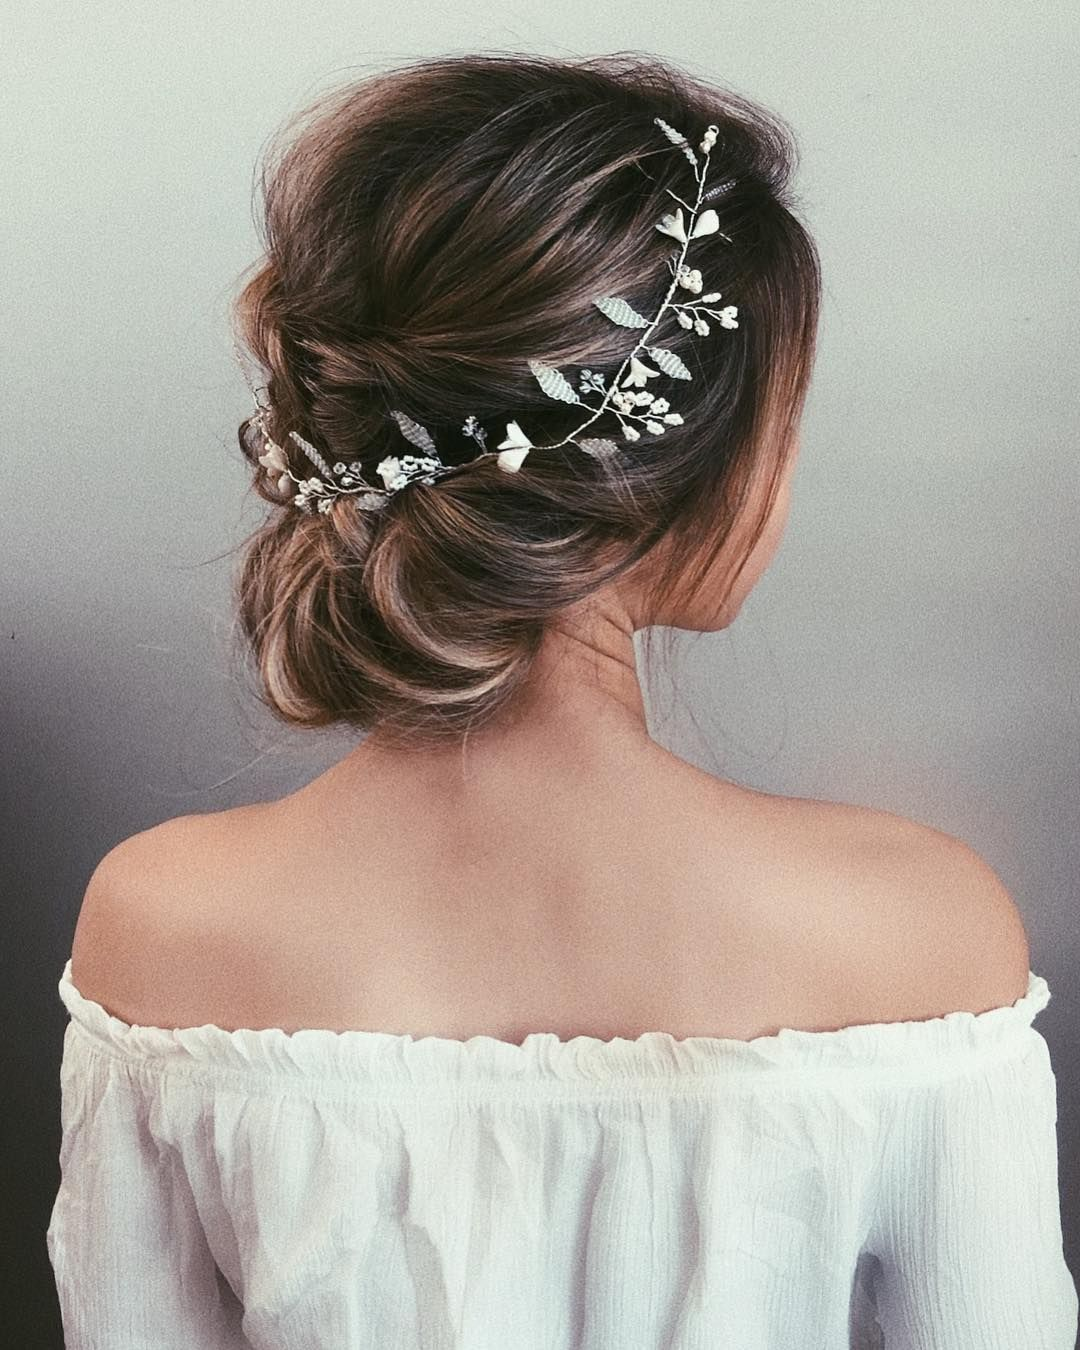 87 Fabulous Wedding Hairstyles For Every Wedding Dress Neckline Bride Hair Down Strapless Dress Hairstyles Wedding Hair Inspiration